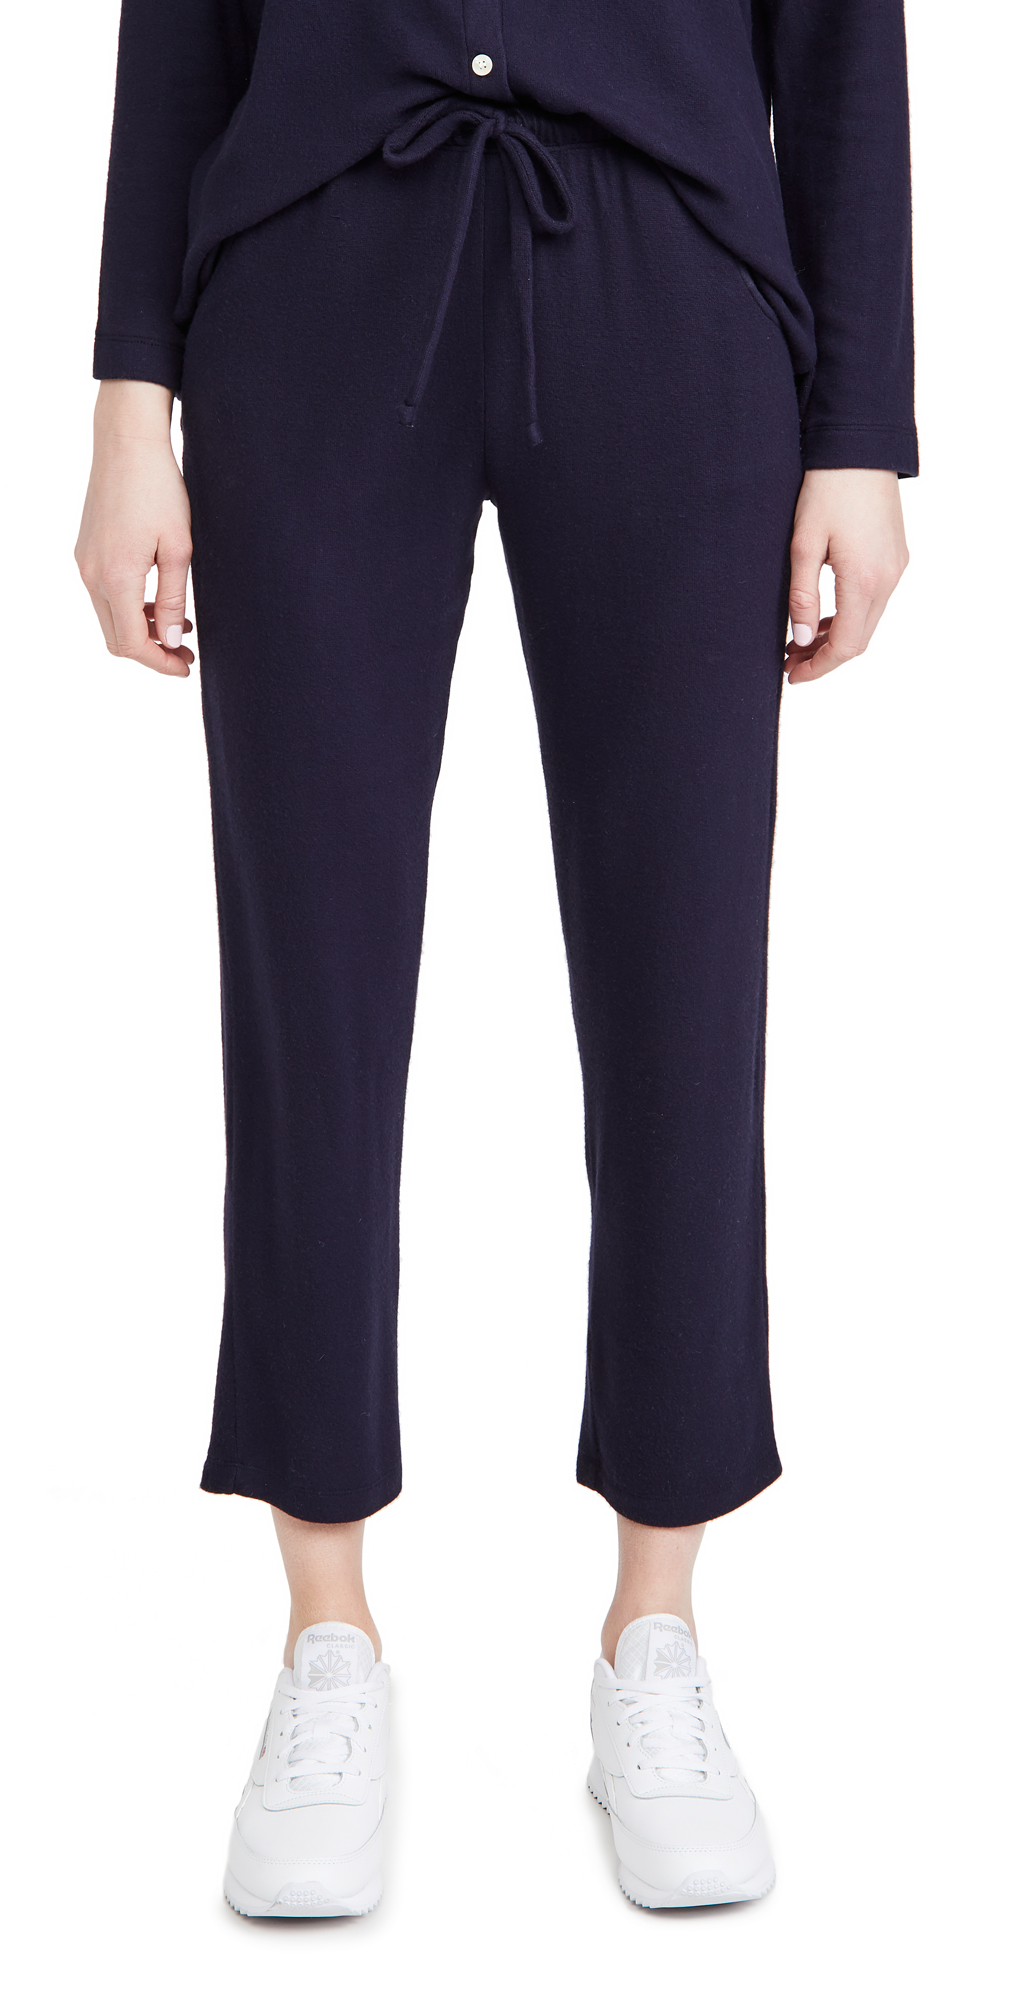 Leset Lori Drawstring Pocket Pants